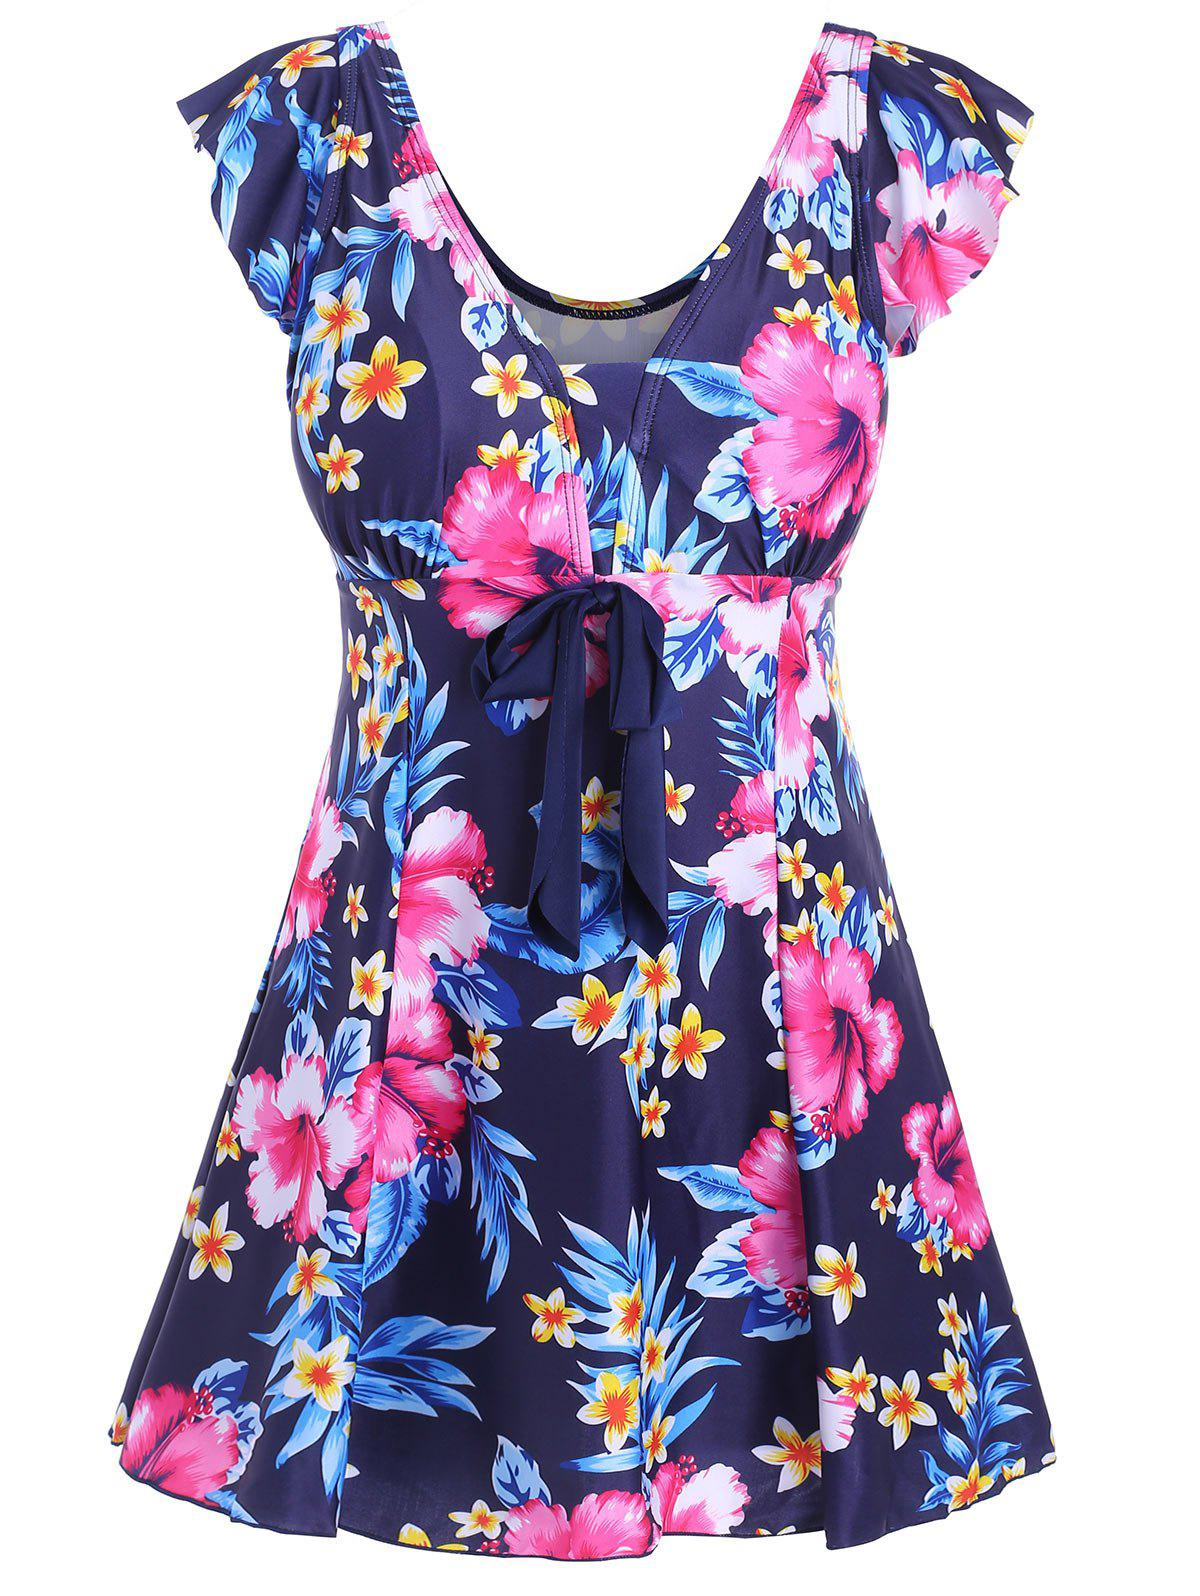 Underwire Padded Floral Plus Size SwimdressWOMEN<br><br>Size: 5XL; Color: BLUE; Gender: For Women; Swimwear Type: One Piece; Material: Polyester,Spandex; Bra Style: Padded; Support Type: Underwire; Pattern Type: Floral; Waist: High Waisted; Elasticity: Elastic; Weight: 0.4000kg; Package Contents: 1 x Swimdress;